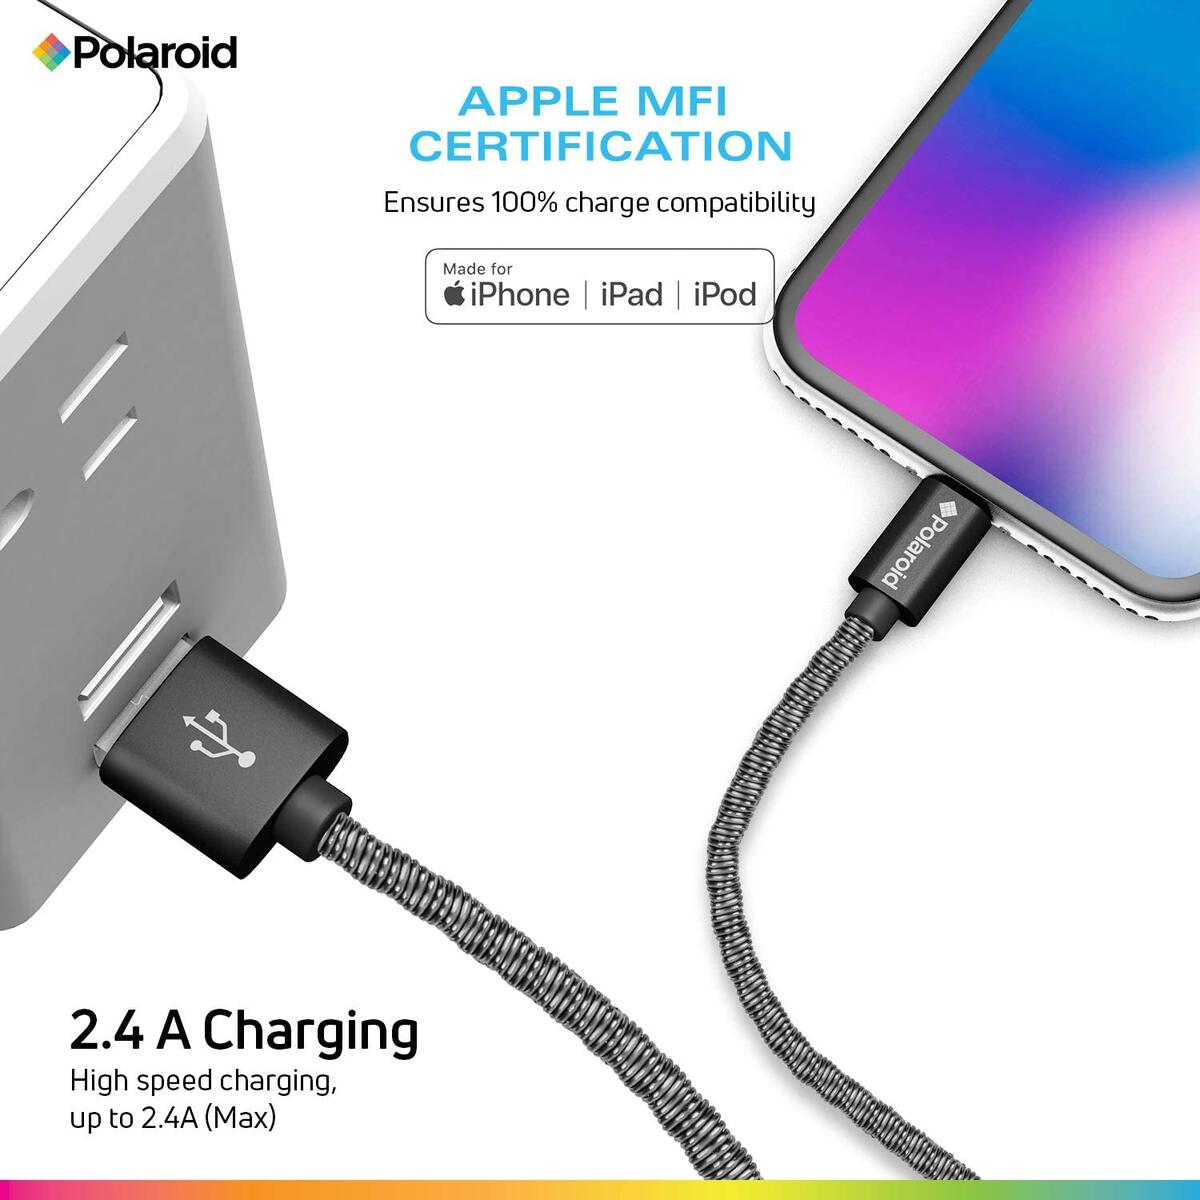 Polaroid 5ft Lightning Cable, Apple MFi Certified, Durable Metal Spiral